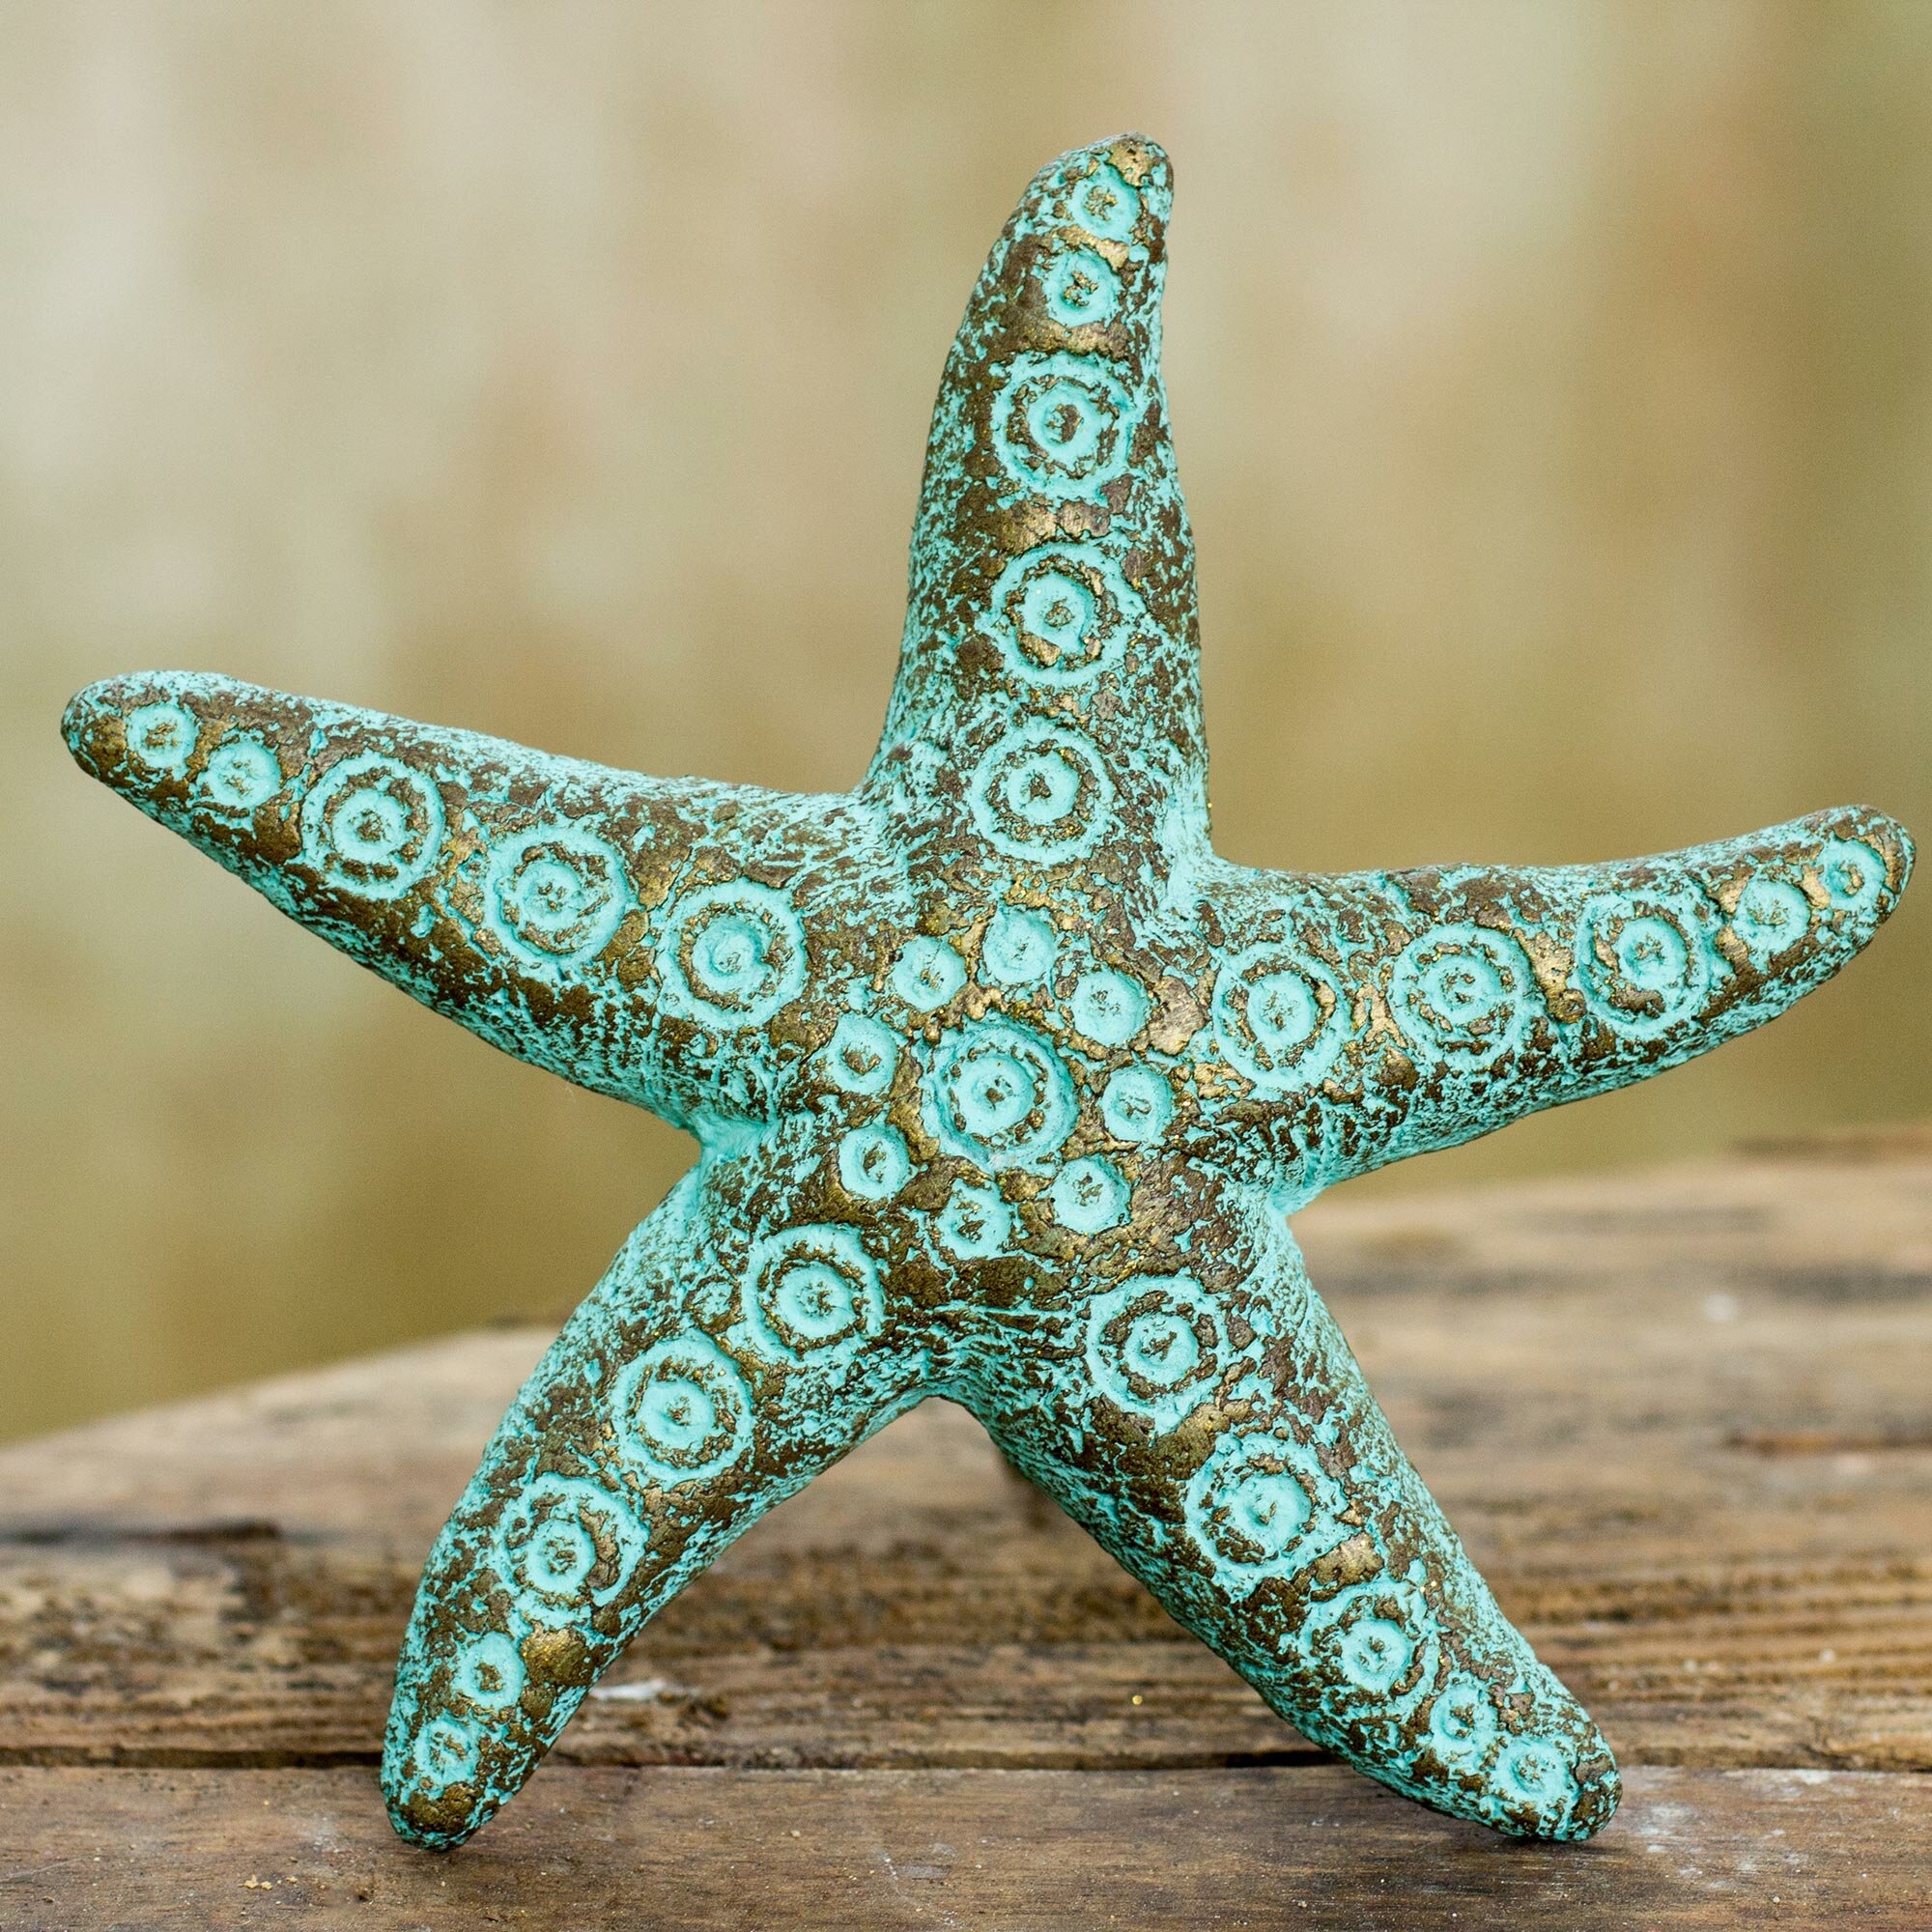 free english essays,essay worksheets The starfish